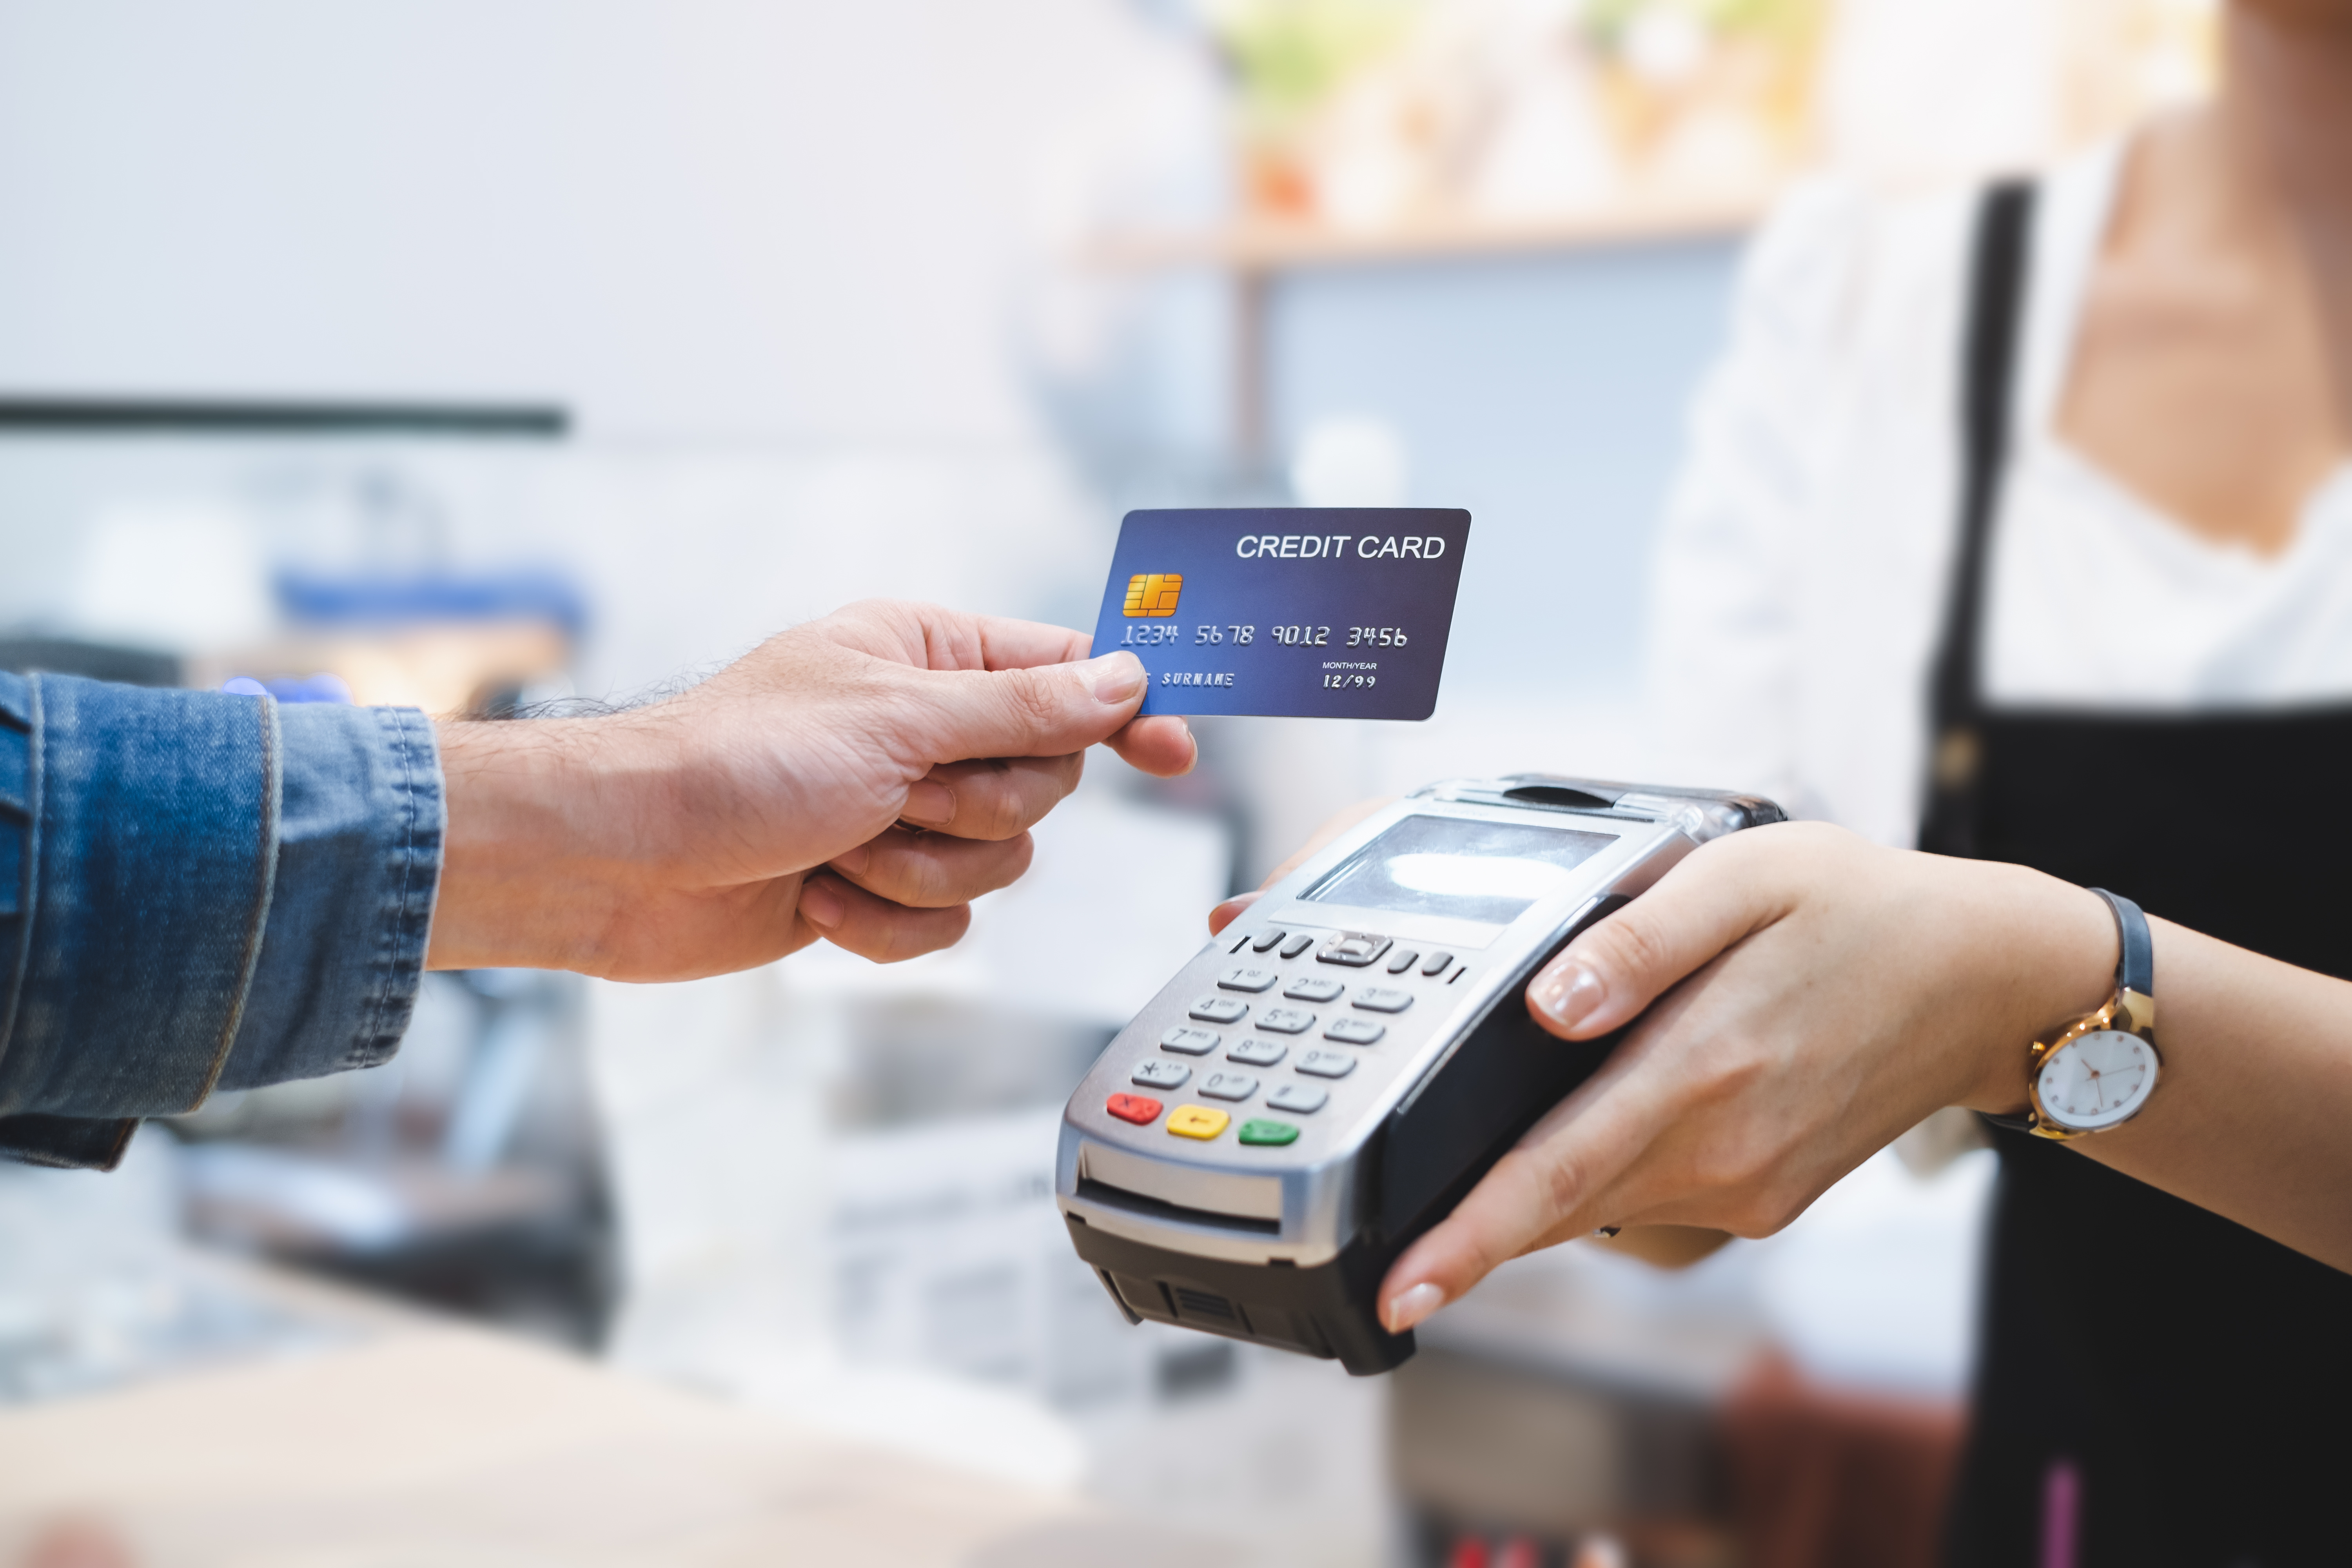 surcharge vs cash discount pay by card